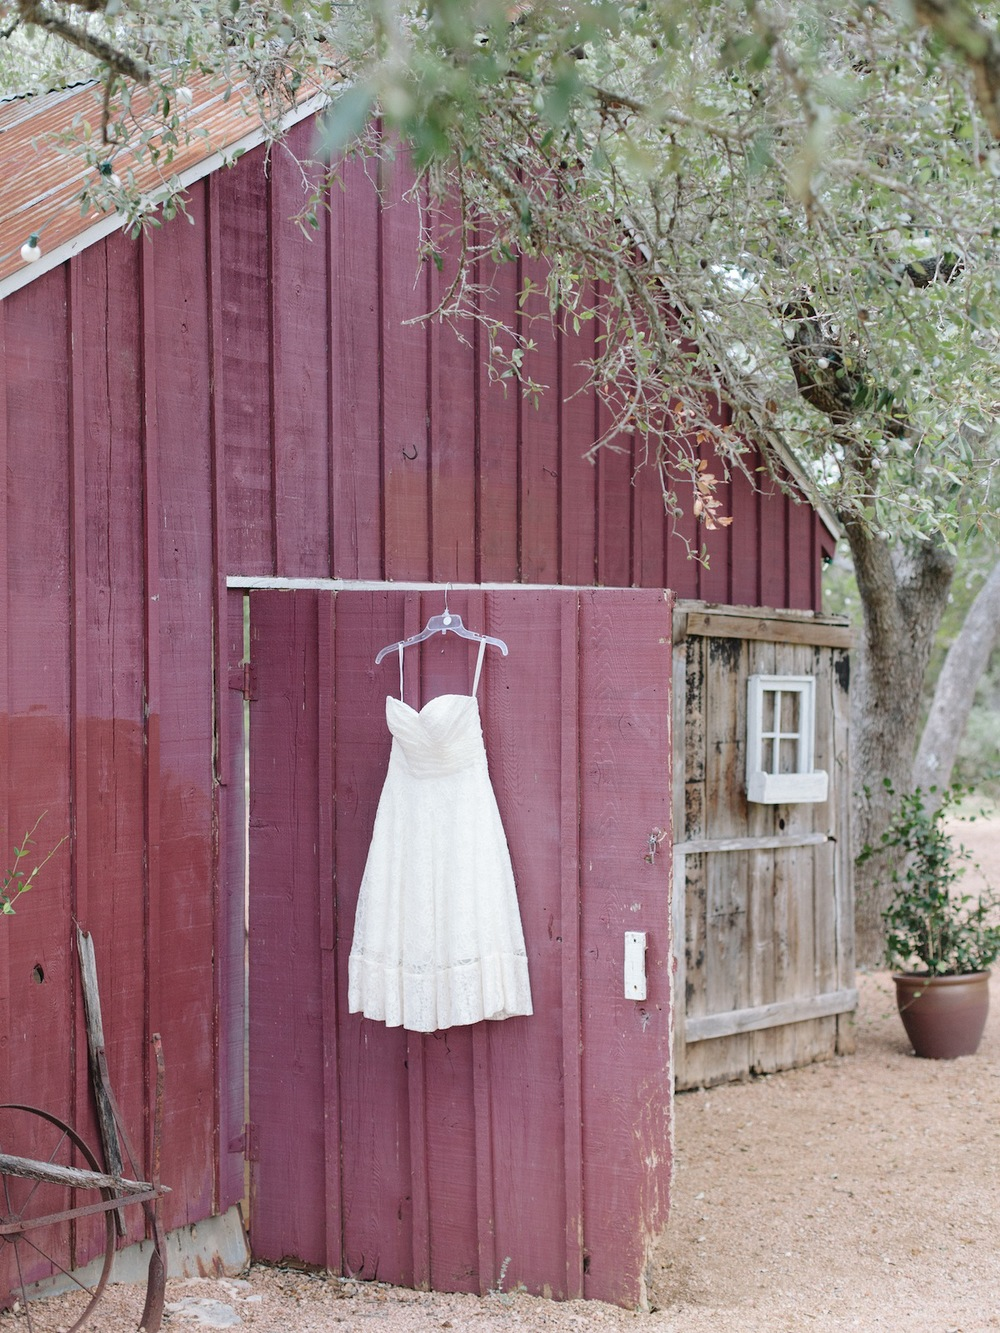 Austin-Wedding-Photographers-Photography-Wildfower-Barn-3.jpg